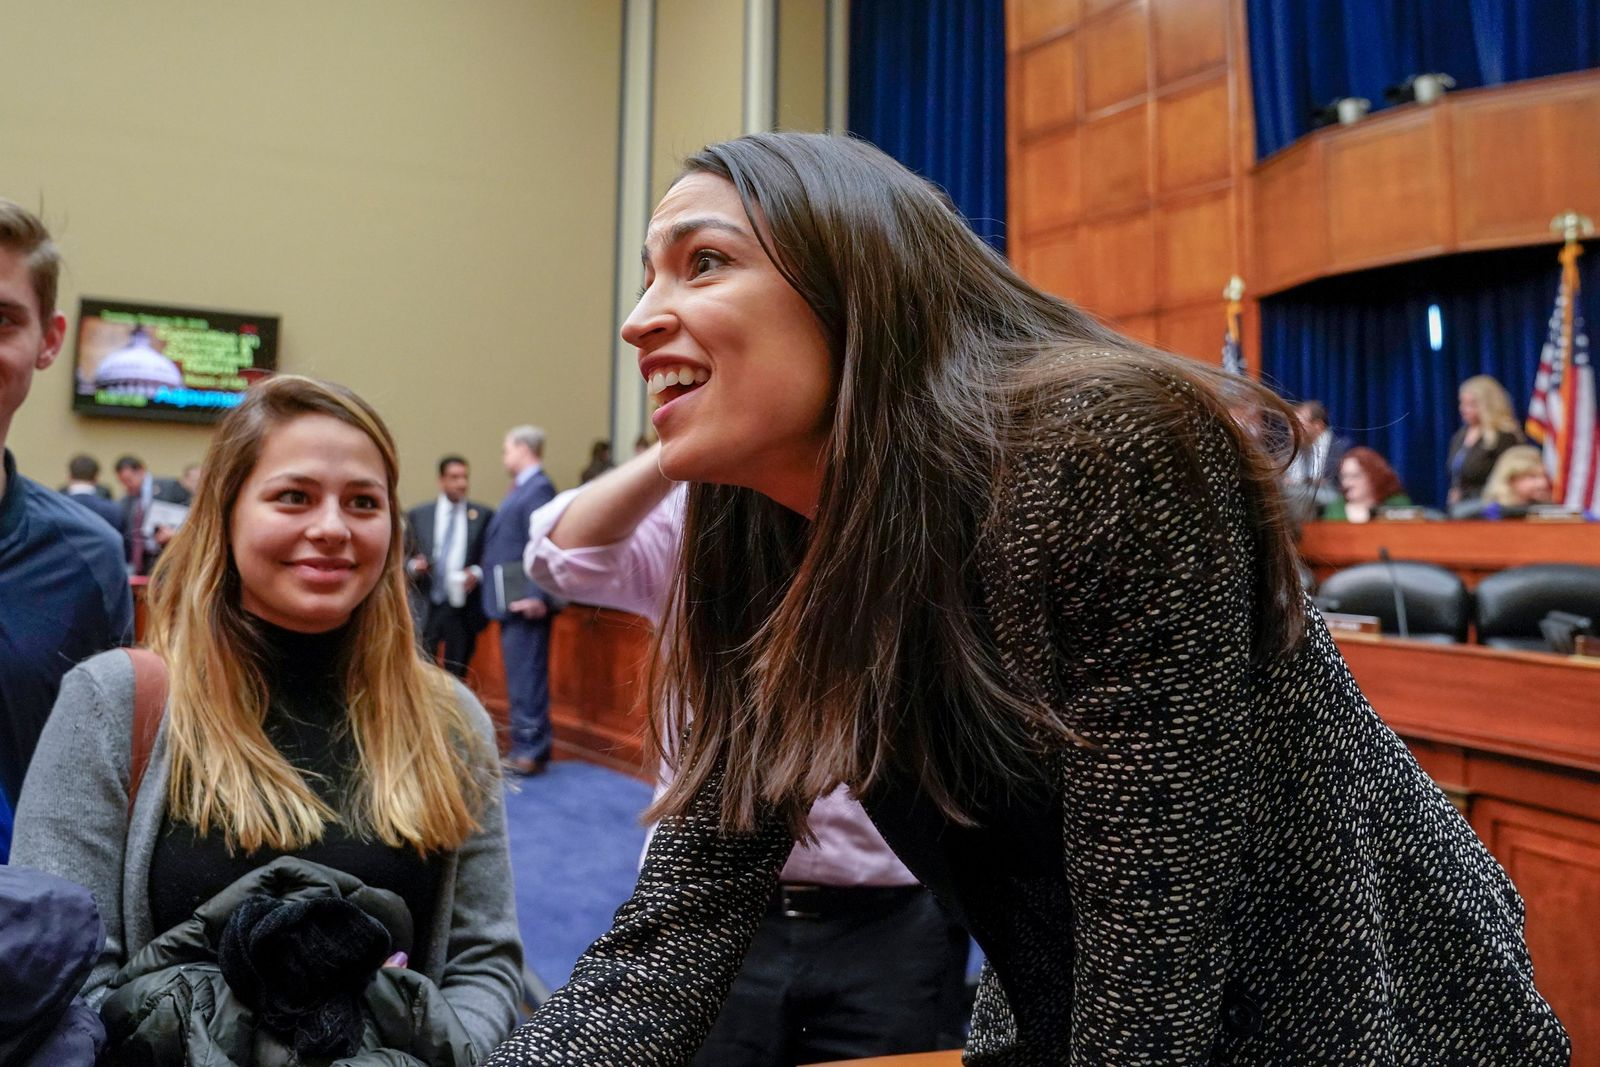 Rep. Alexandria Ocasio-Cortez, D-N.Y., speaks to visiting students following a House Oversight and Reform Committee meeting, on Capitol Hill in Washington, Tuesday, Feb. 26, 2019.{ } (AP Photo/J. Scott Applewhite)